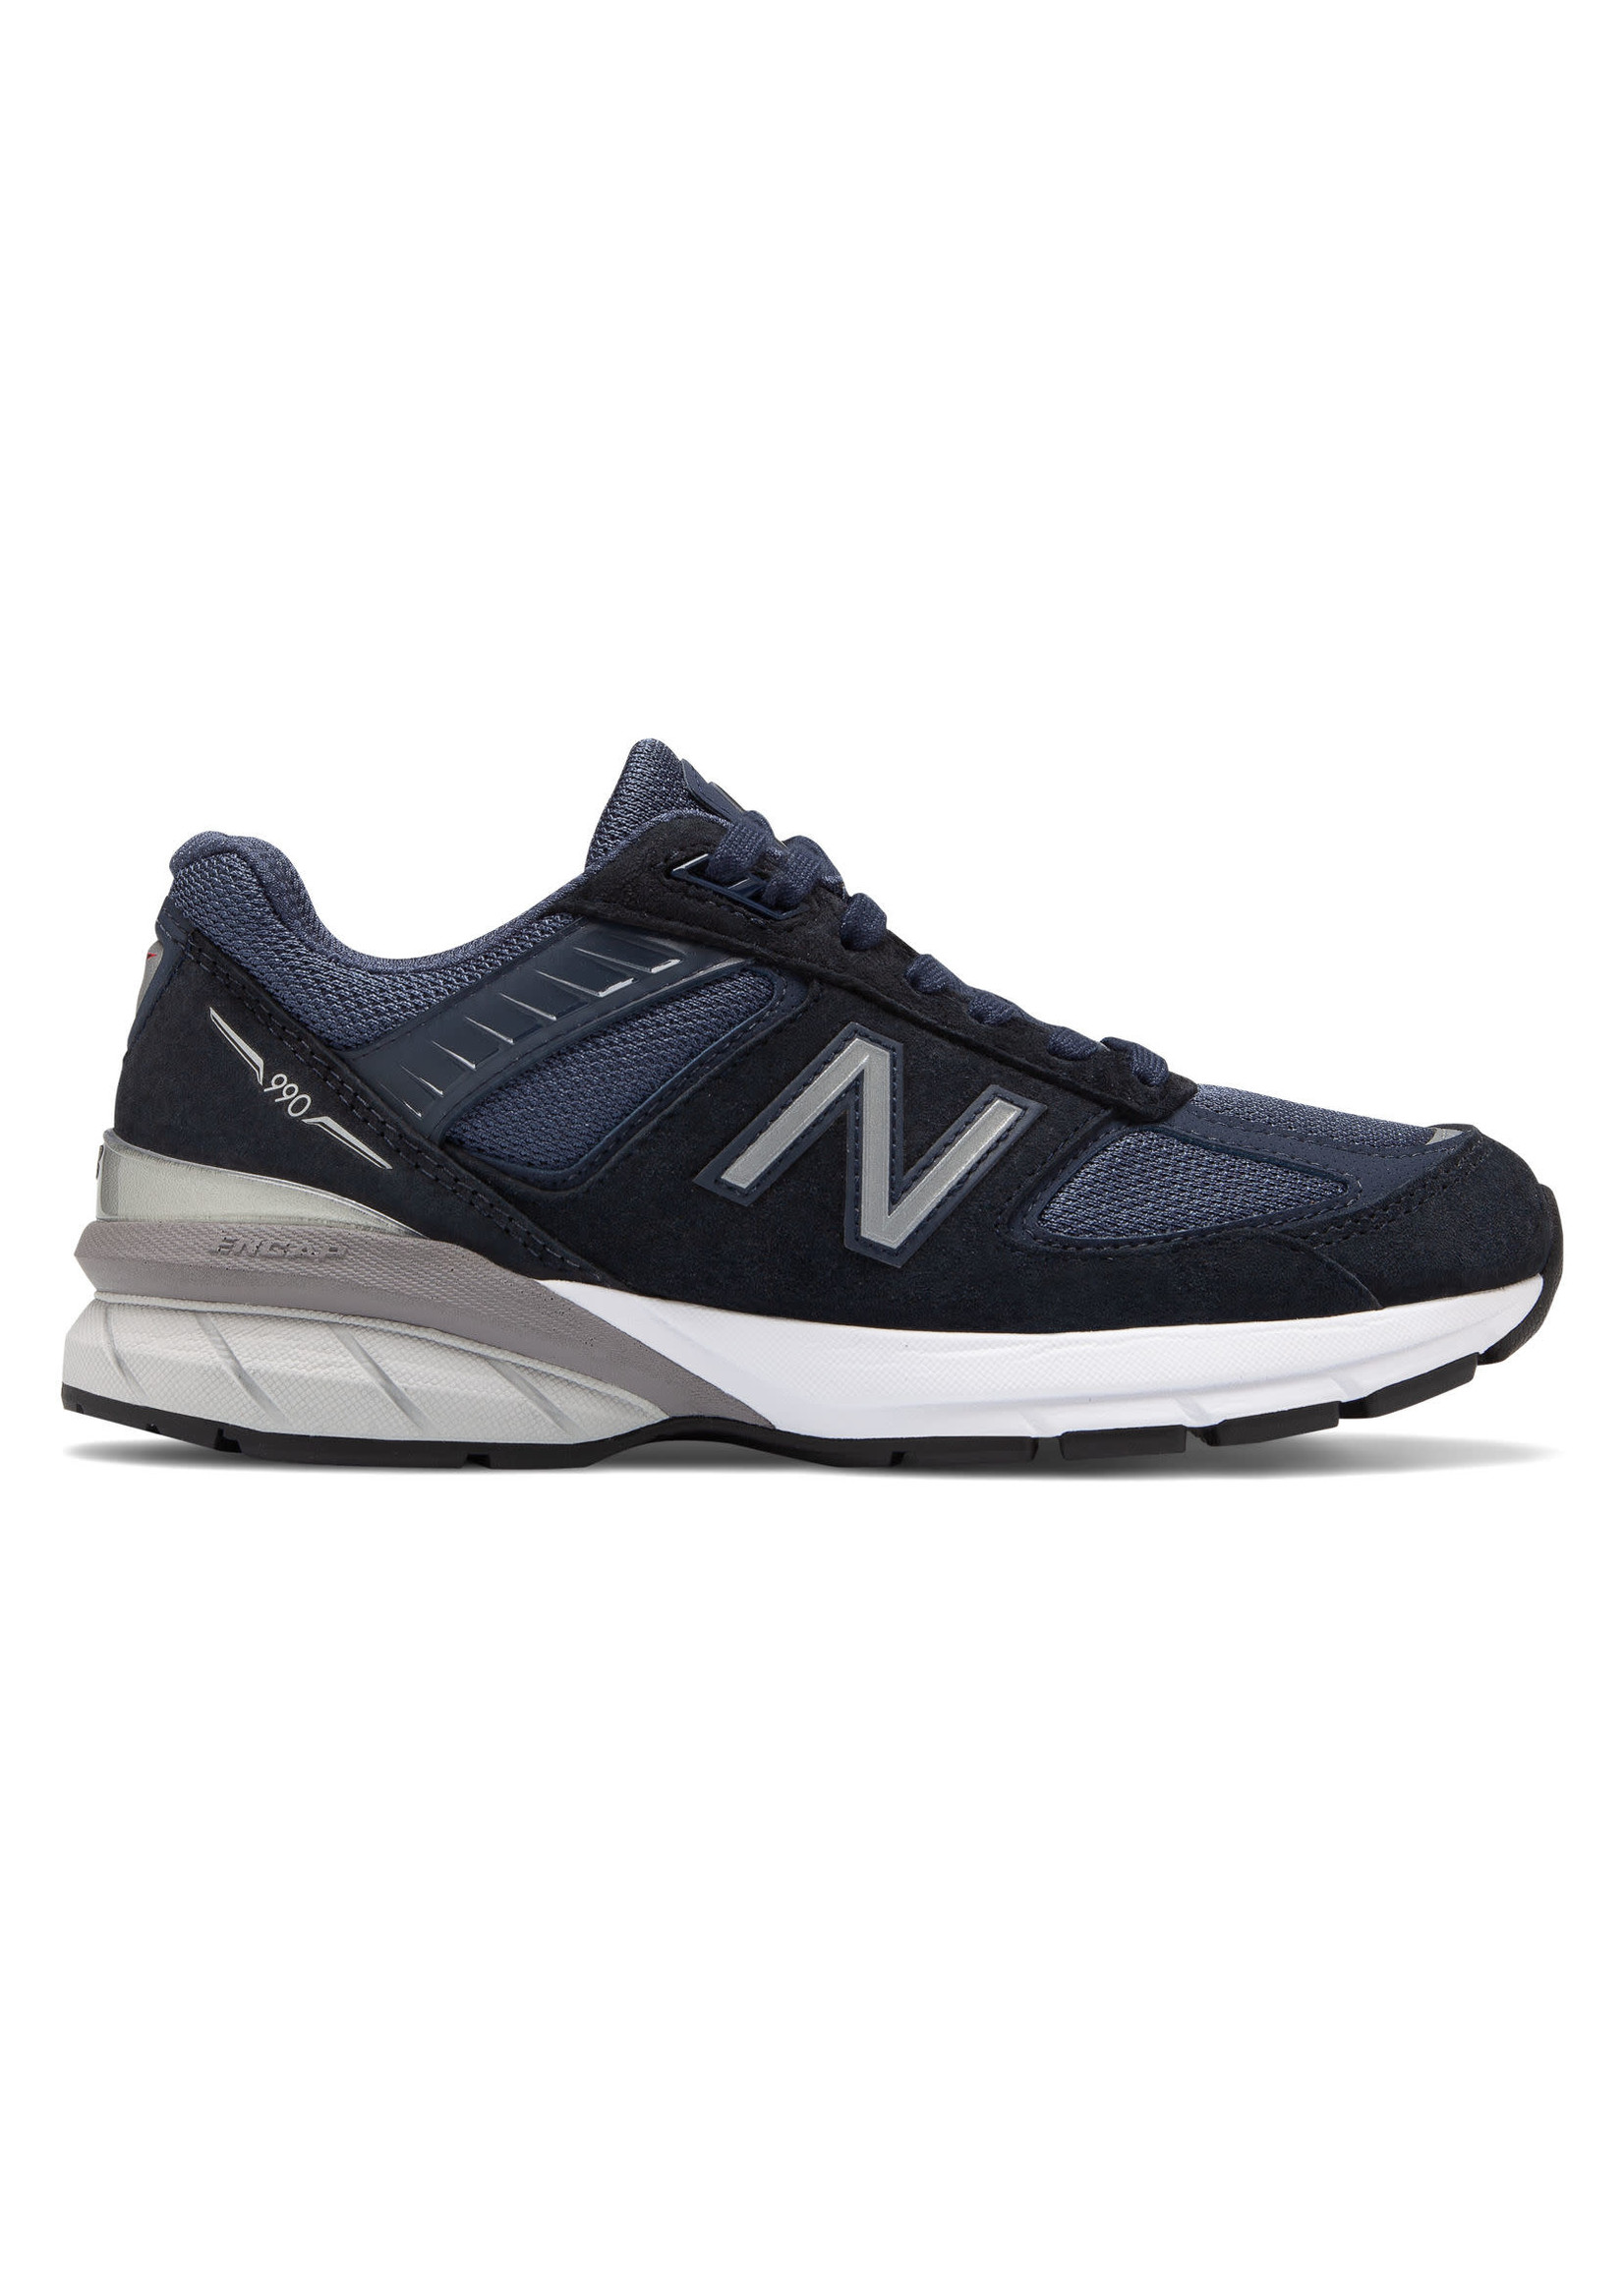 NEW BALANCE NEW BALANCE- WOMENS- W990NV5- NAVY WITH SILVER